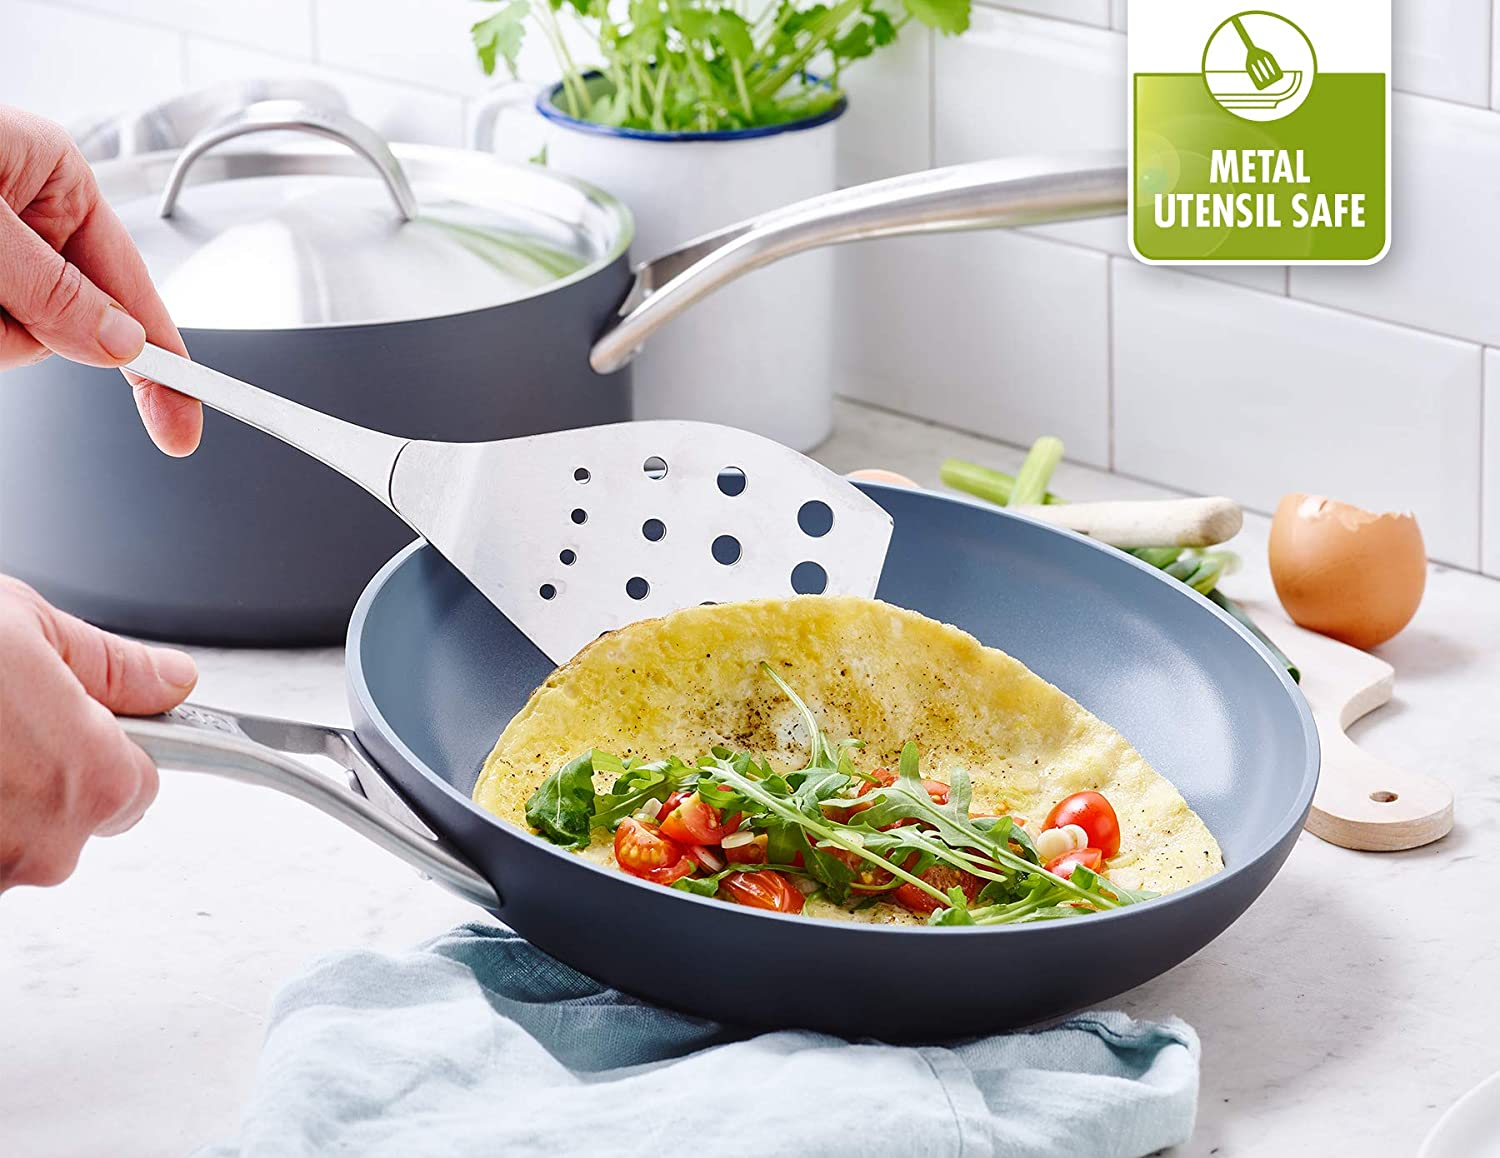 GreenPan Paris 2 Piece Ceramic Non-Stick 8 Inch and 10 Inch Open Frypan Set The Cookware Company CC000043-001